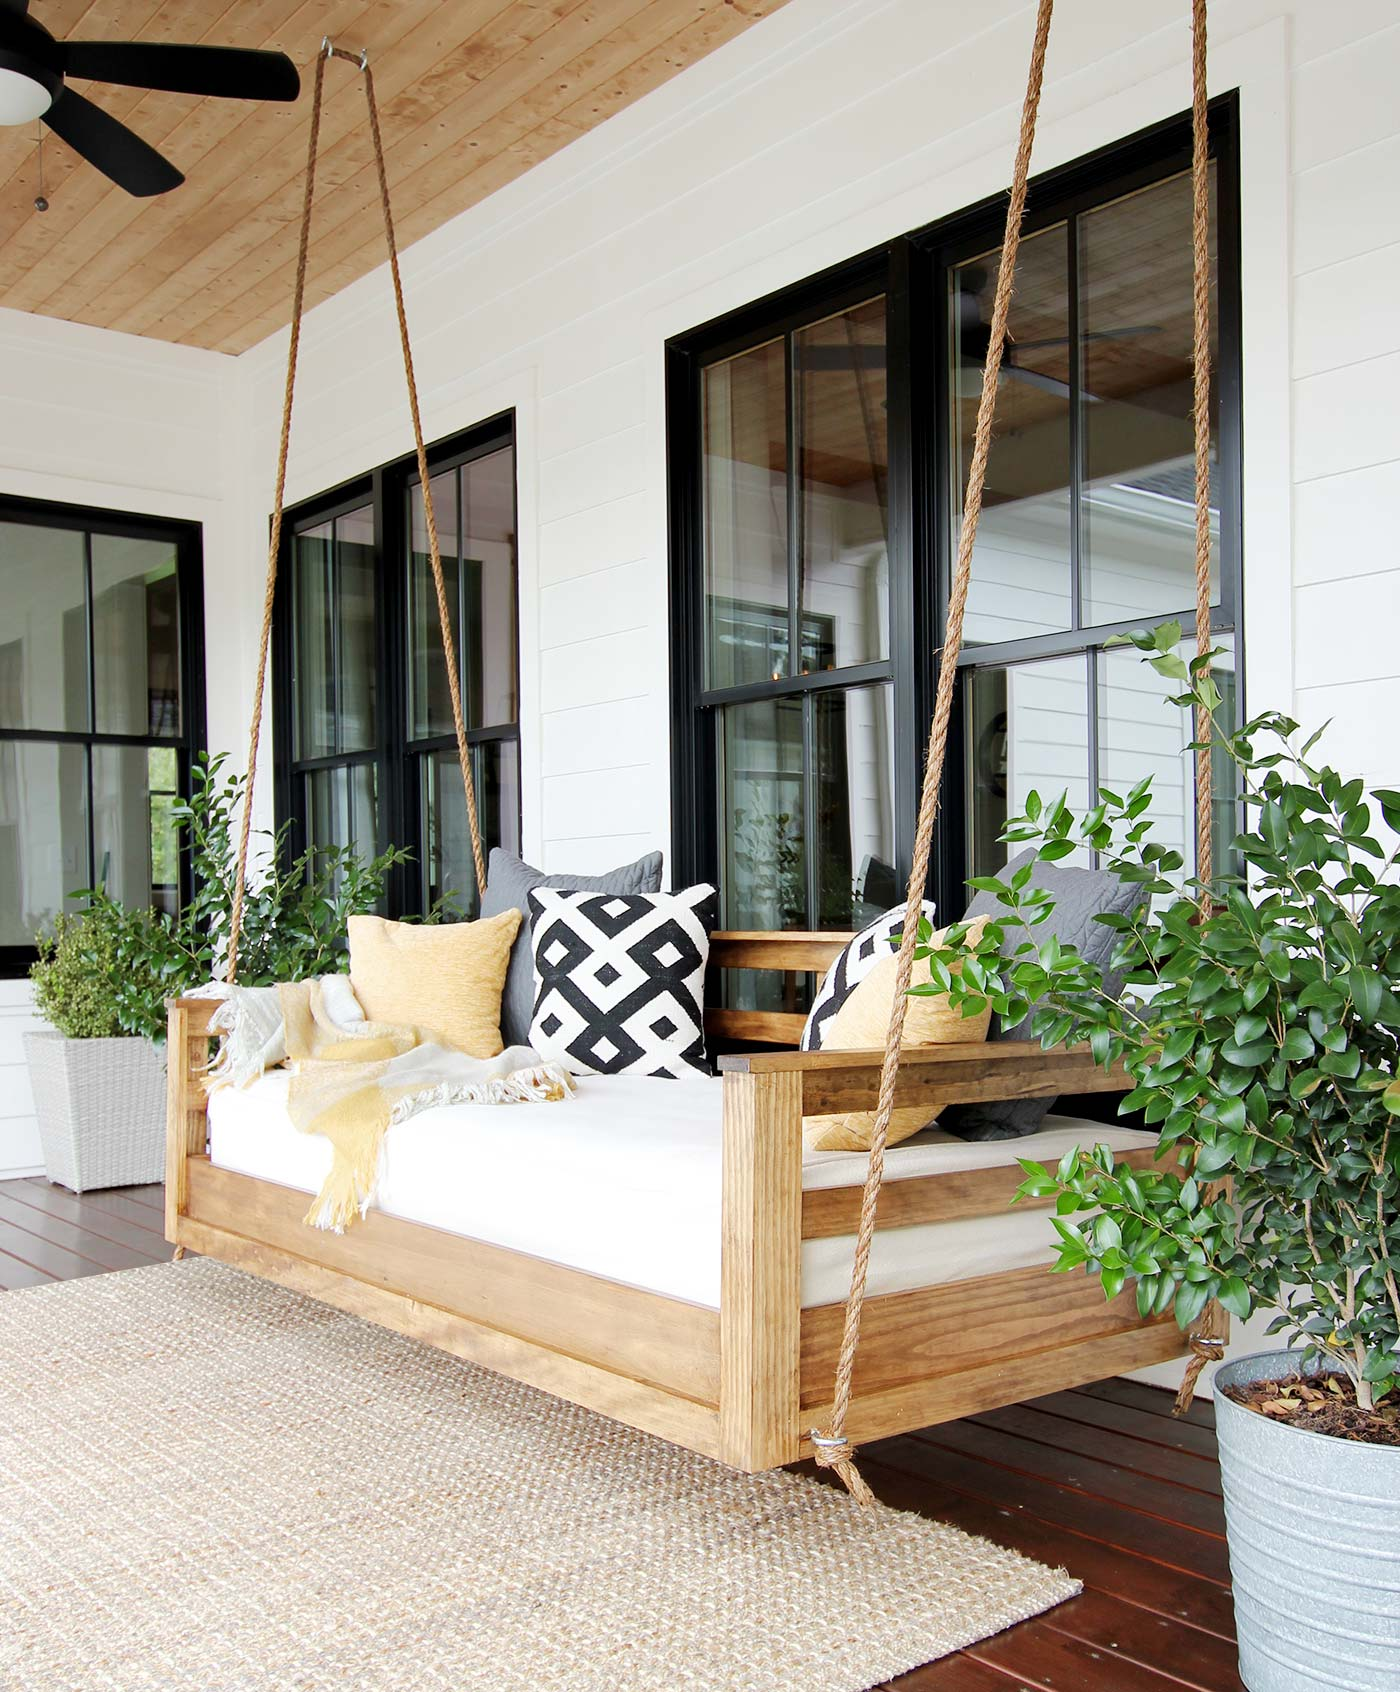 DIY bed porch swing plans